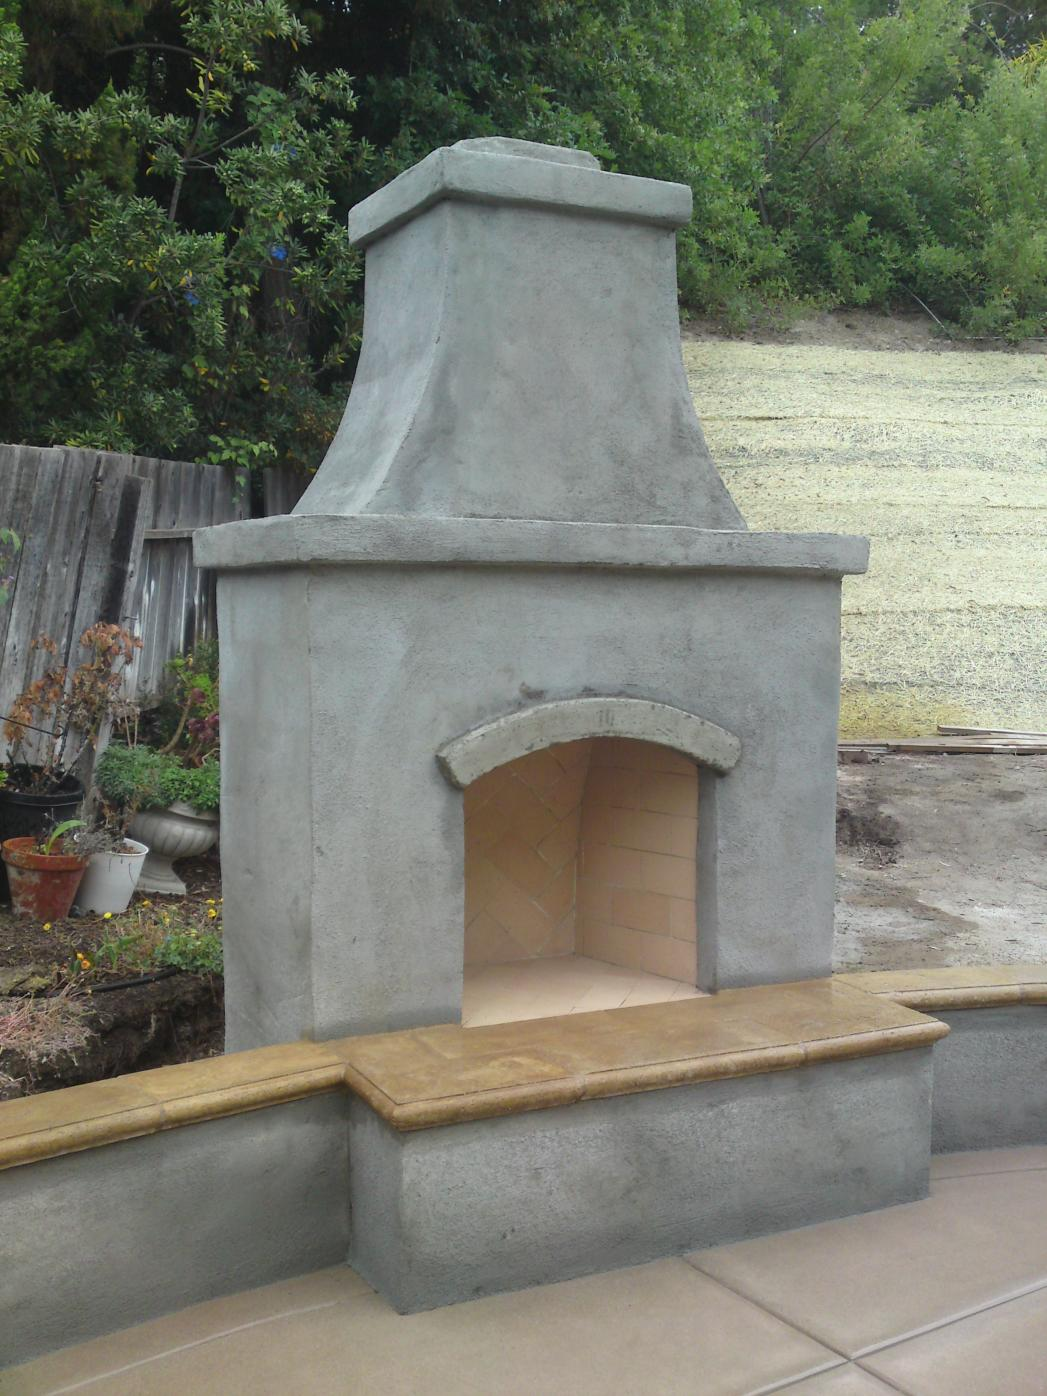 Another outdoor fireplace masonry picture post for Outdoor fireplace plans